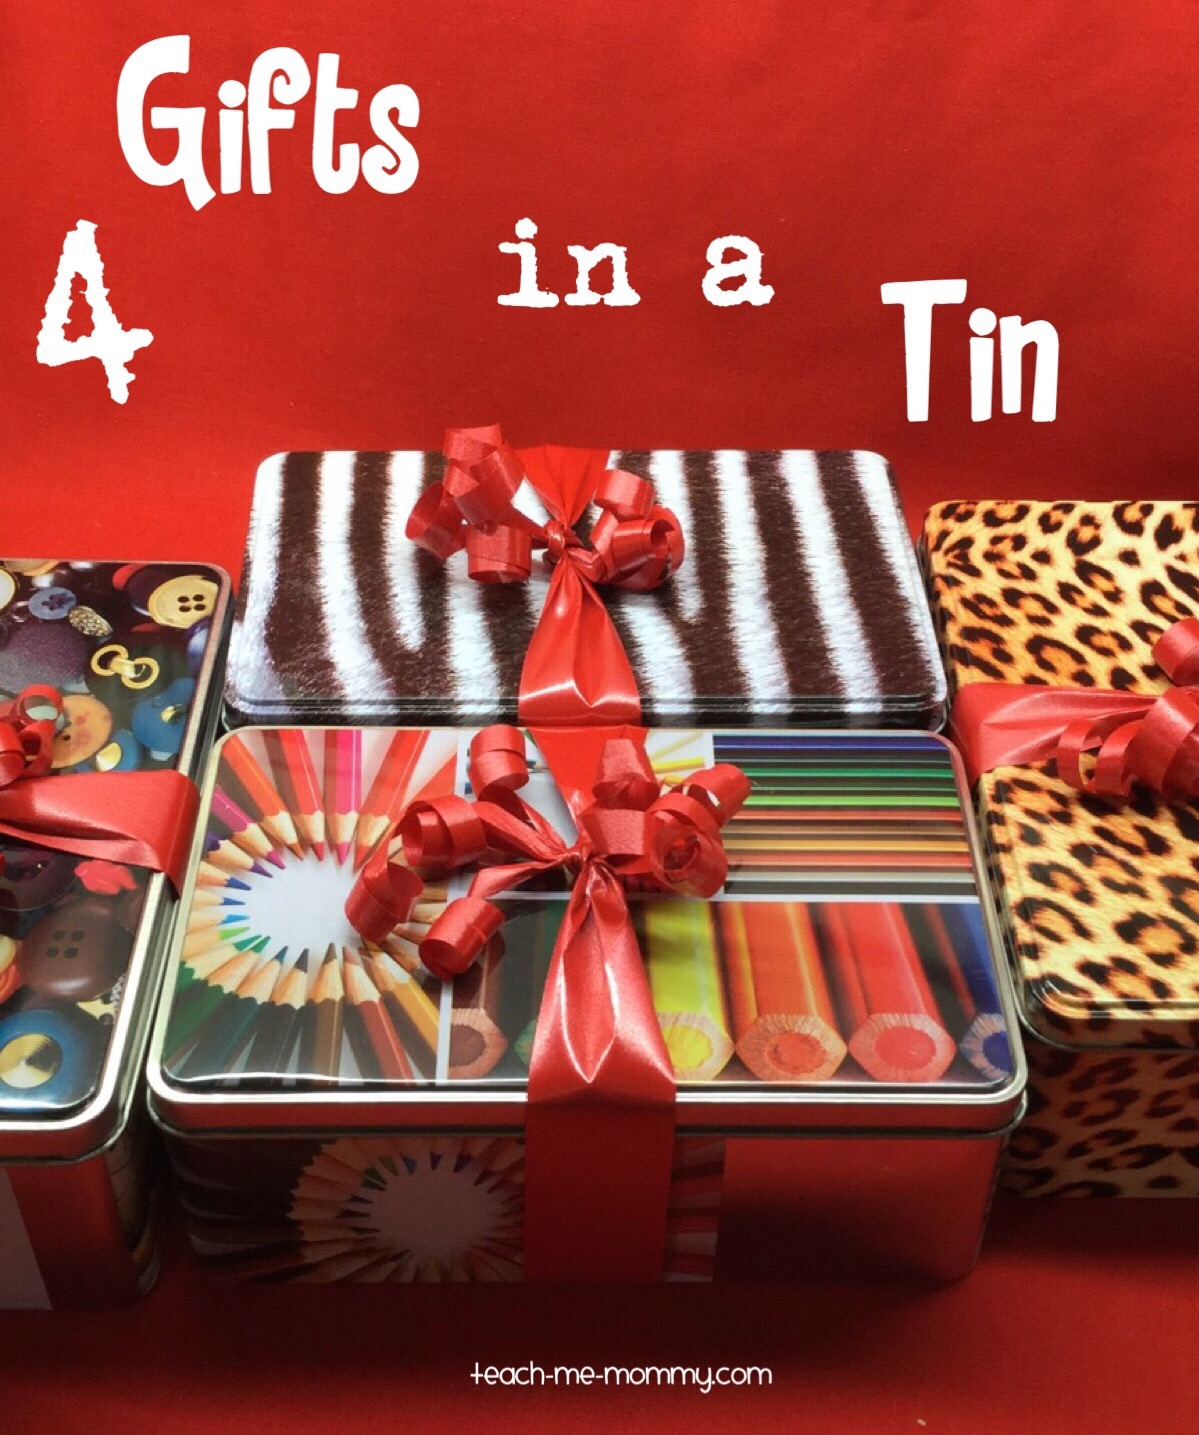 Gifts in tins